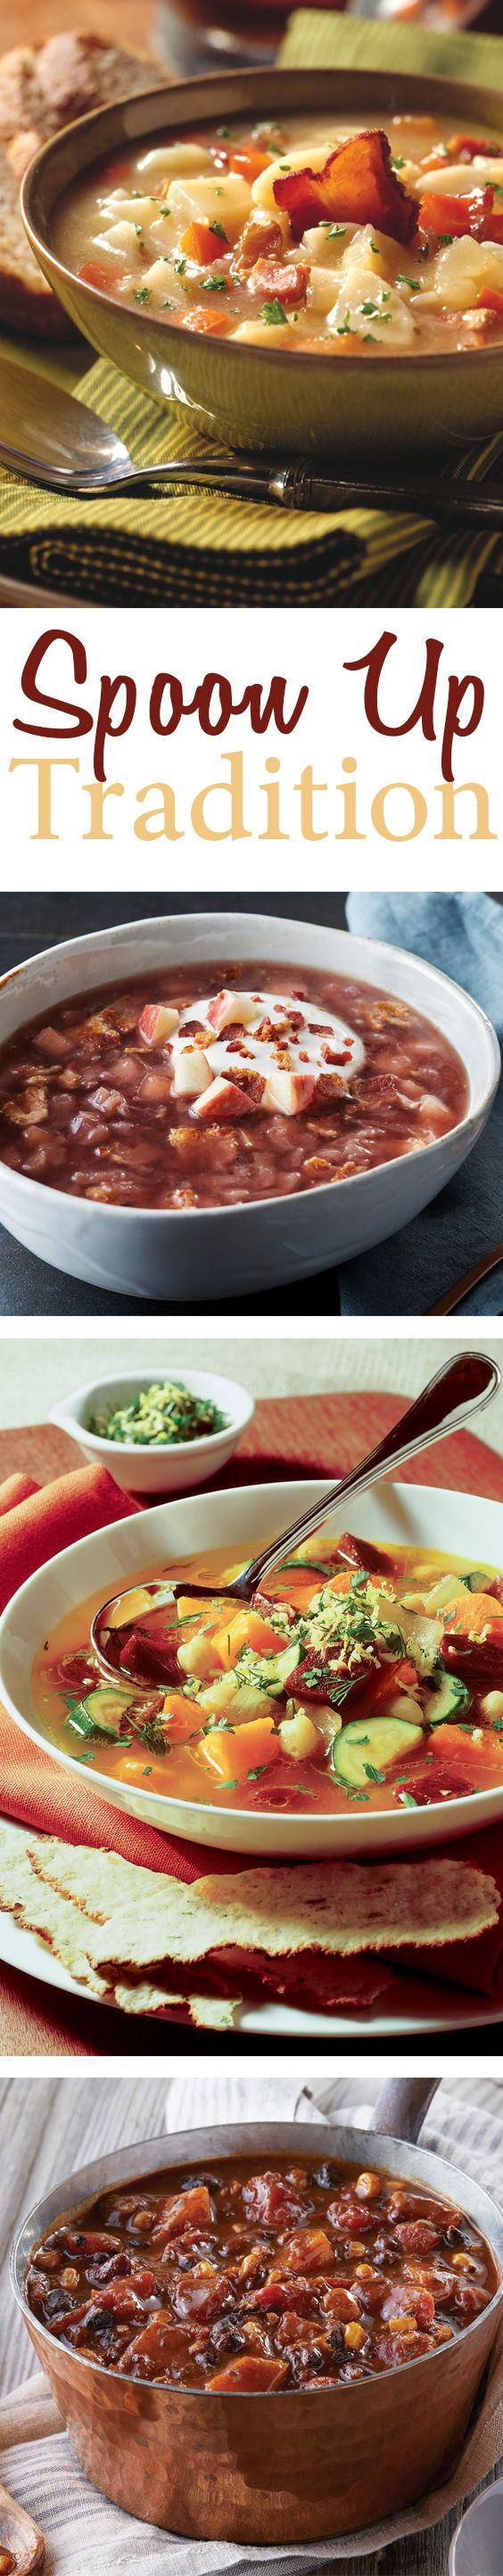 Soups and stews, like these recipes for German Potato Salad Soup, Bacon-Apple Red Cabbage Soup, Tex-Mex Bean and Butternut Squash Stew, and Rustic Vegetable Beet Soup, are perfect for cool weather.